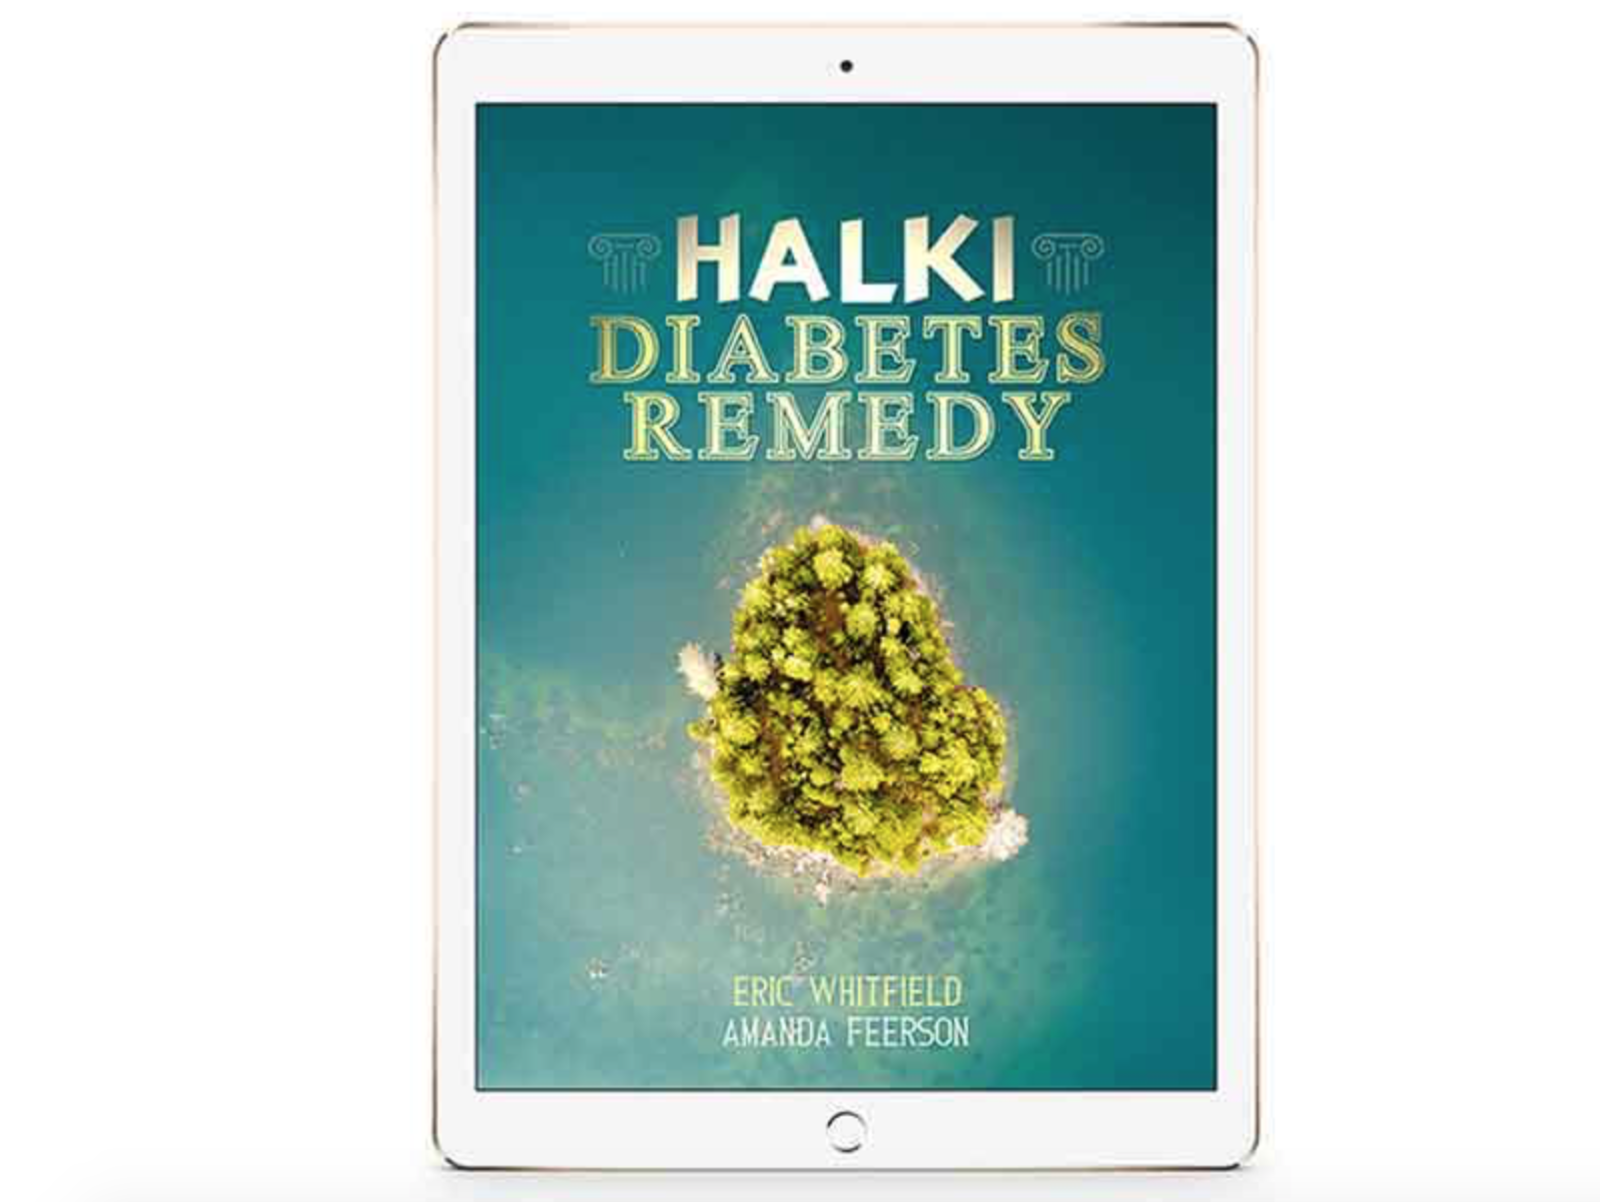 Halki Diabetes Remedy Reviews – A Working Diabetes Remedy Program Or Waste Of Time?